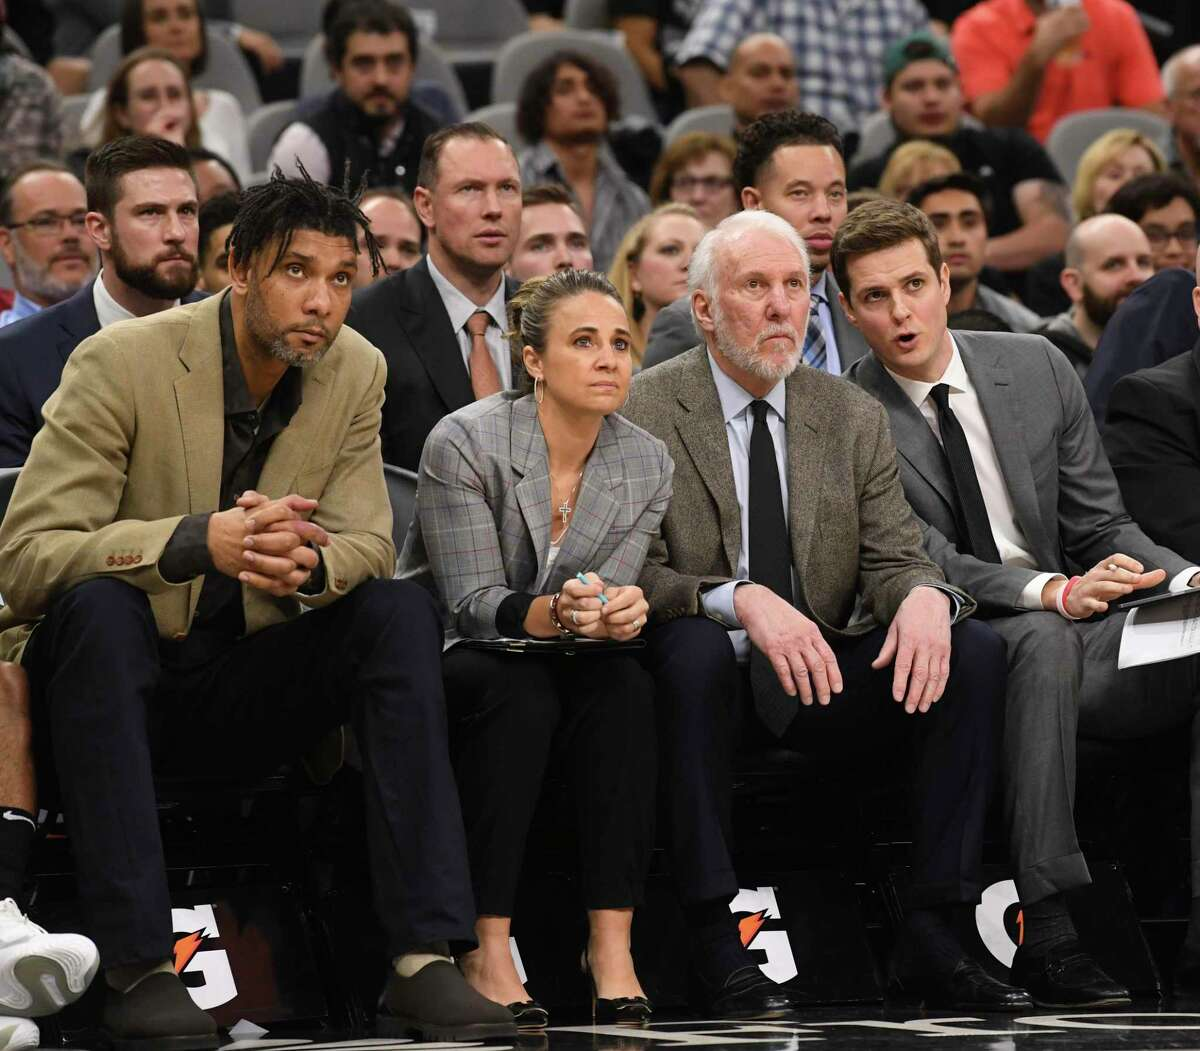 When Becky Hammon, pictured here in 2020, makes history and breaks more barriers - she will have earned it- just as she has throughout her time on the court as a player and a coach.